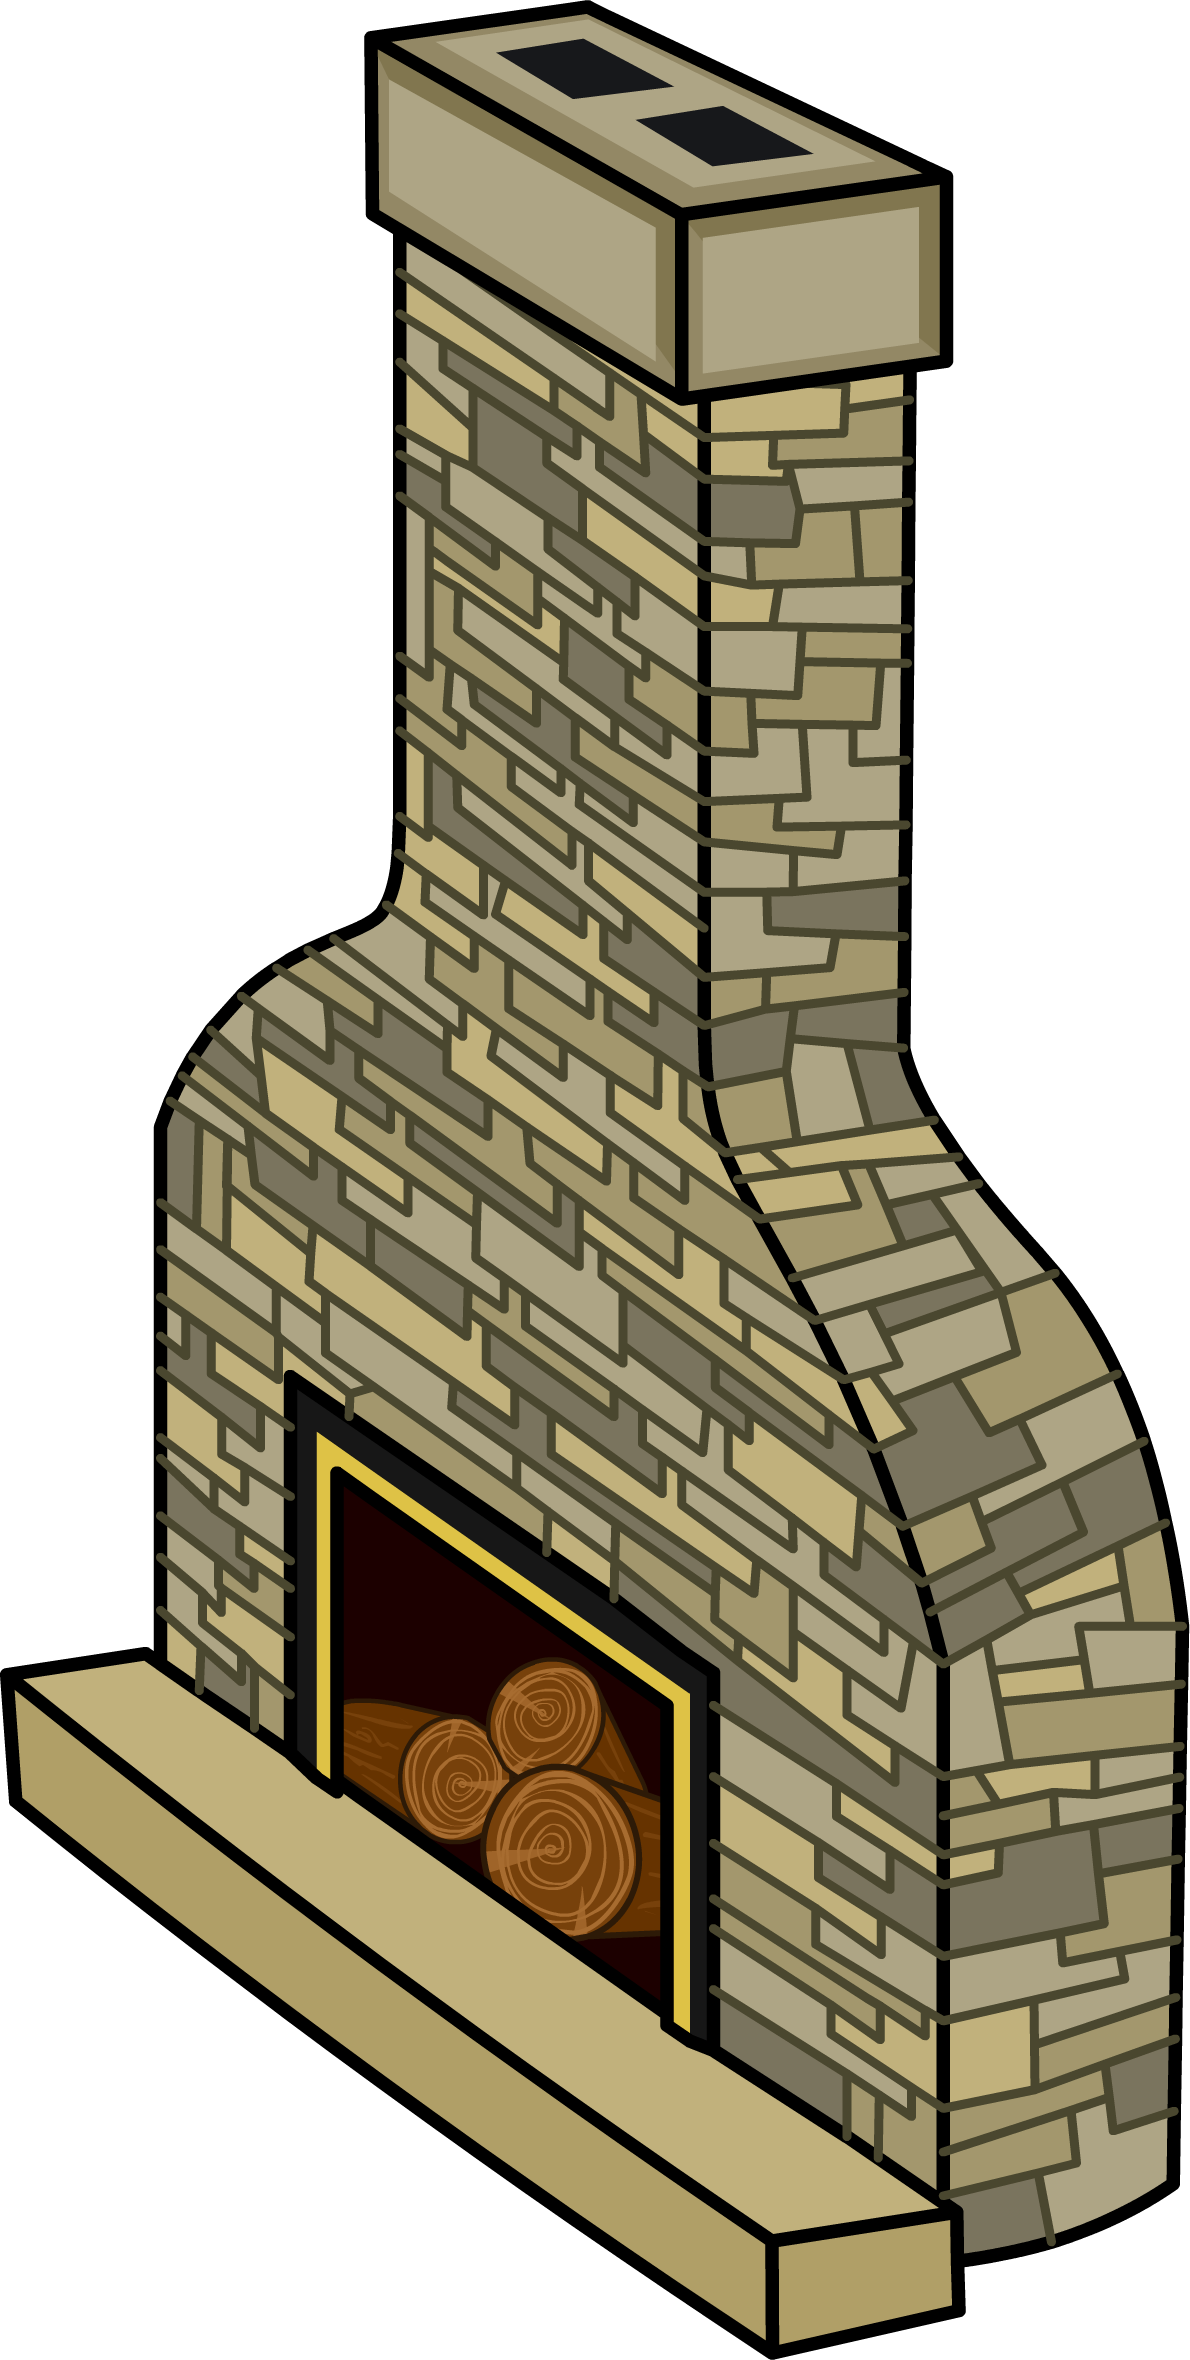 Fireplace clipart cozy fireplace. Image sprite png club